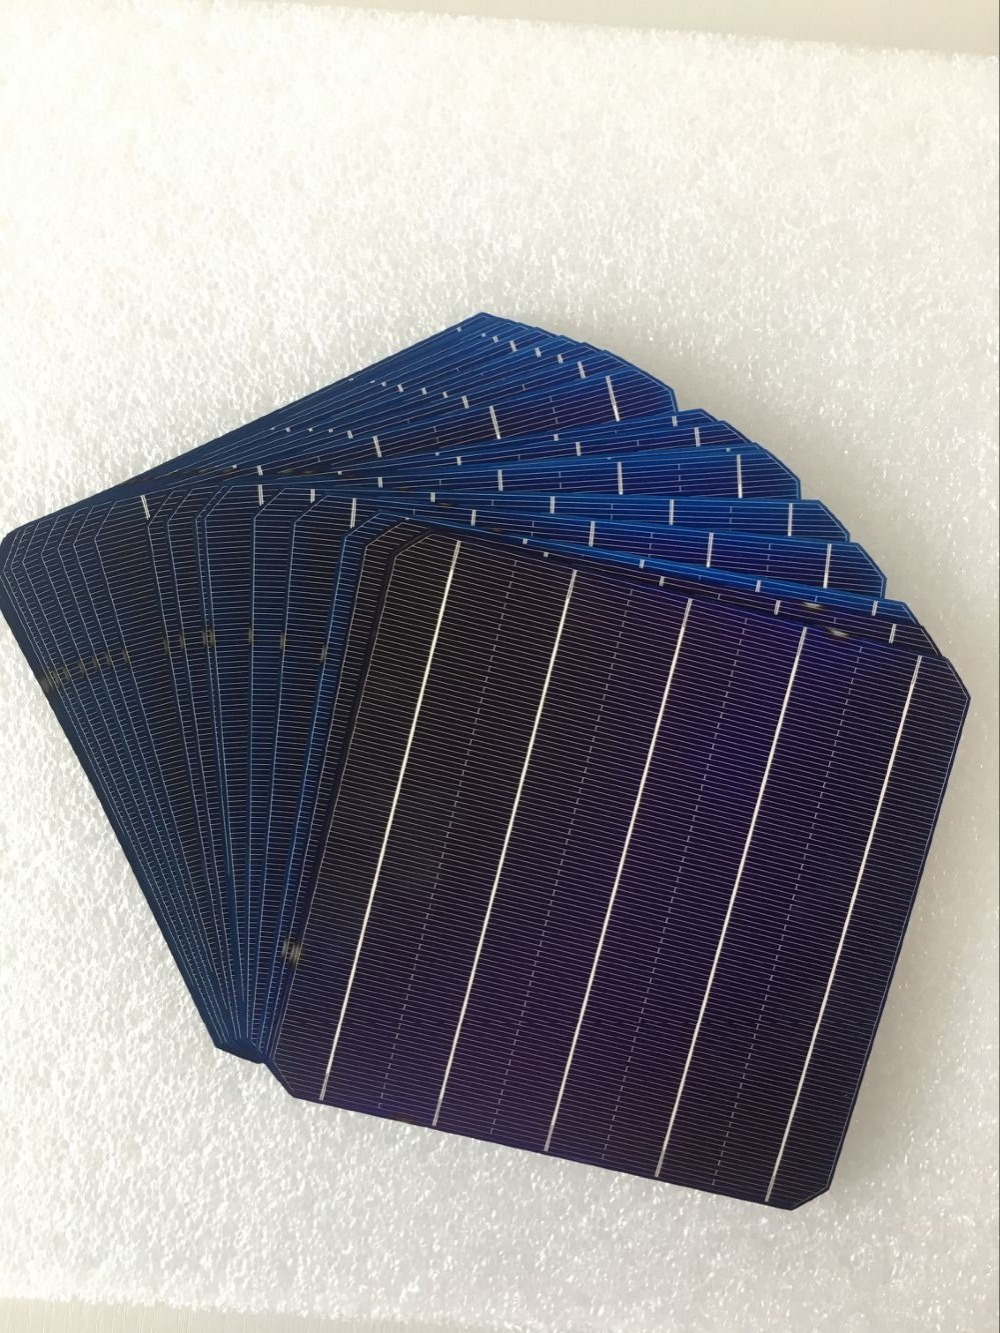 100Pcs 5W 0.5V 20.6% Effciency Grade A 156 * 156MM Photovoltaic Mono Monocrystalline Silicon Solar Cell 6x6 For Solar Panel